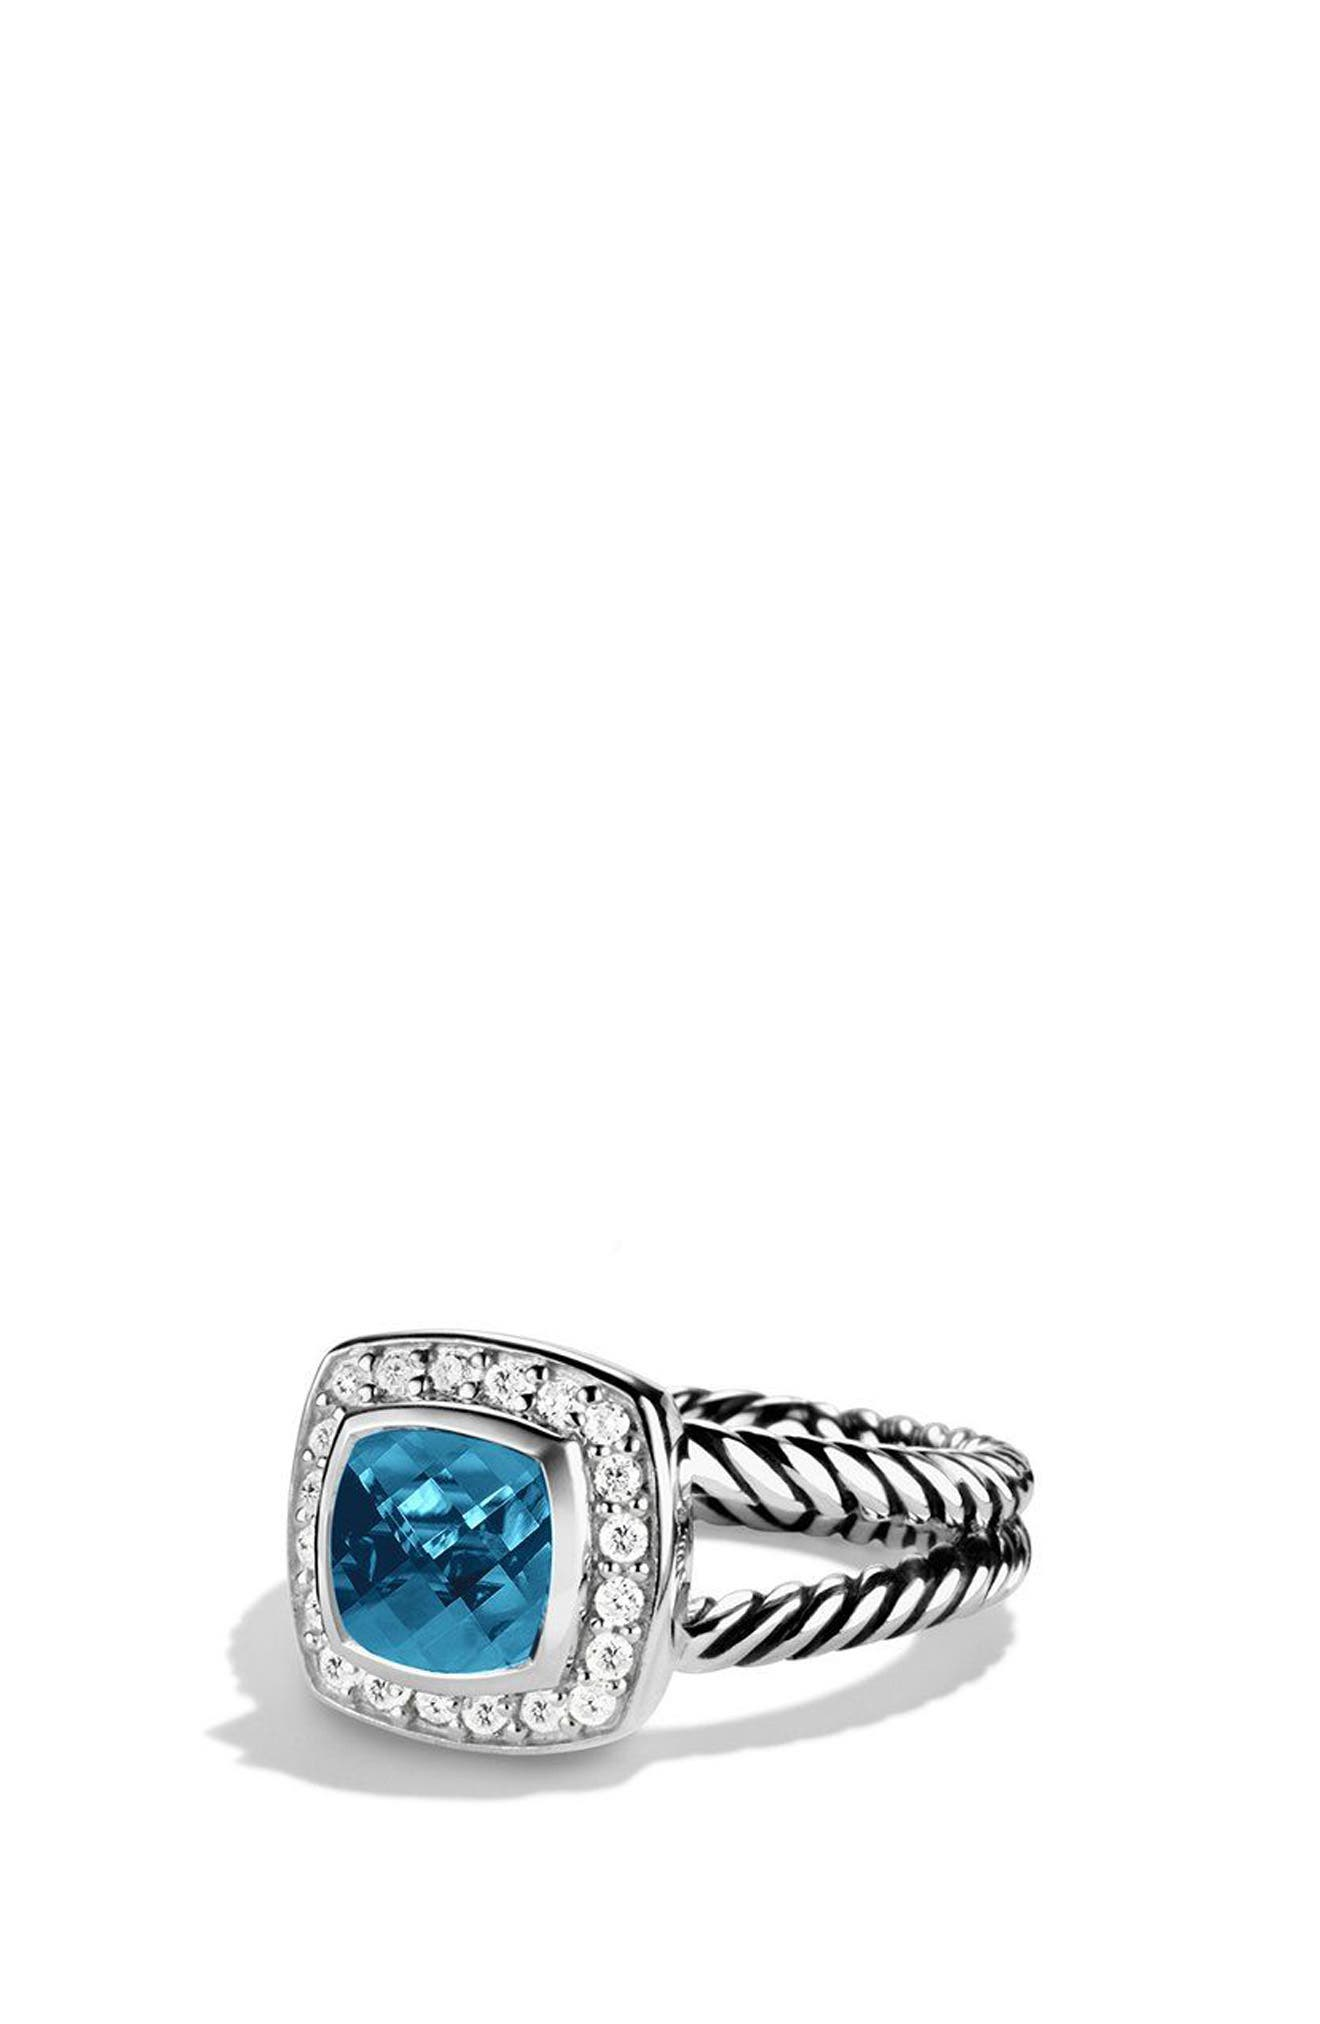 Main Image - David Yurman Petite Albion® Ring with Diamonds